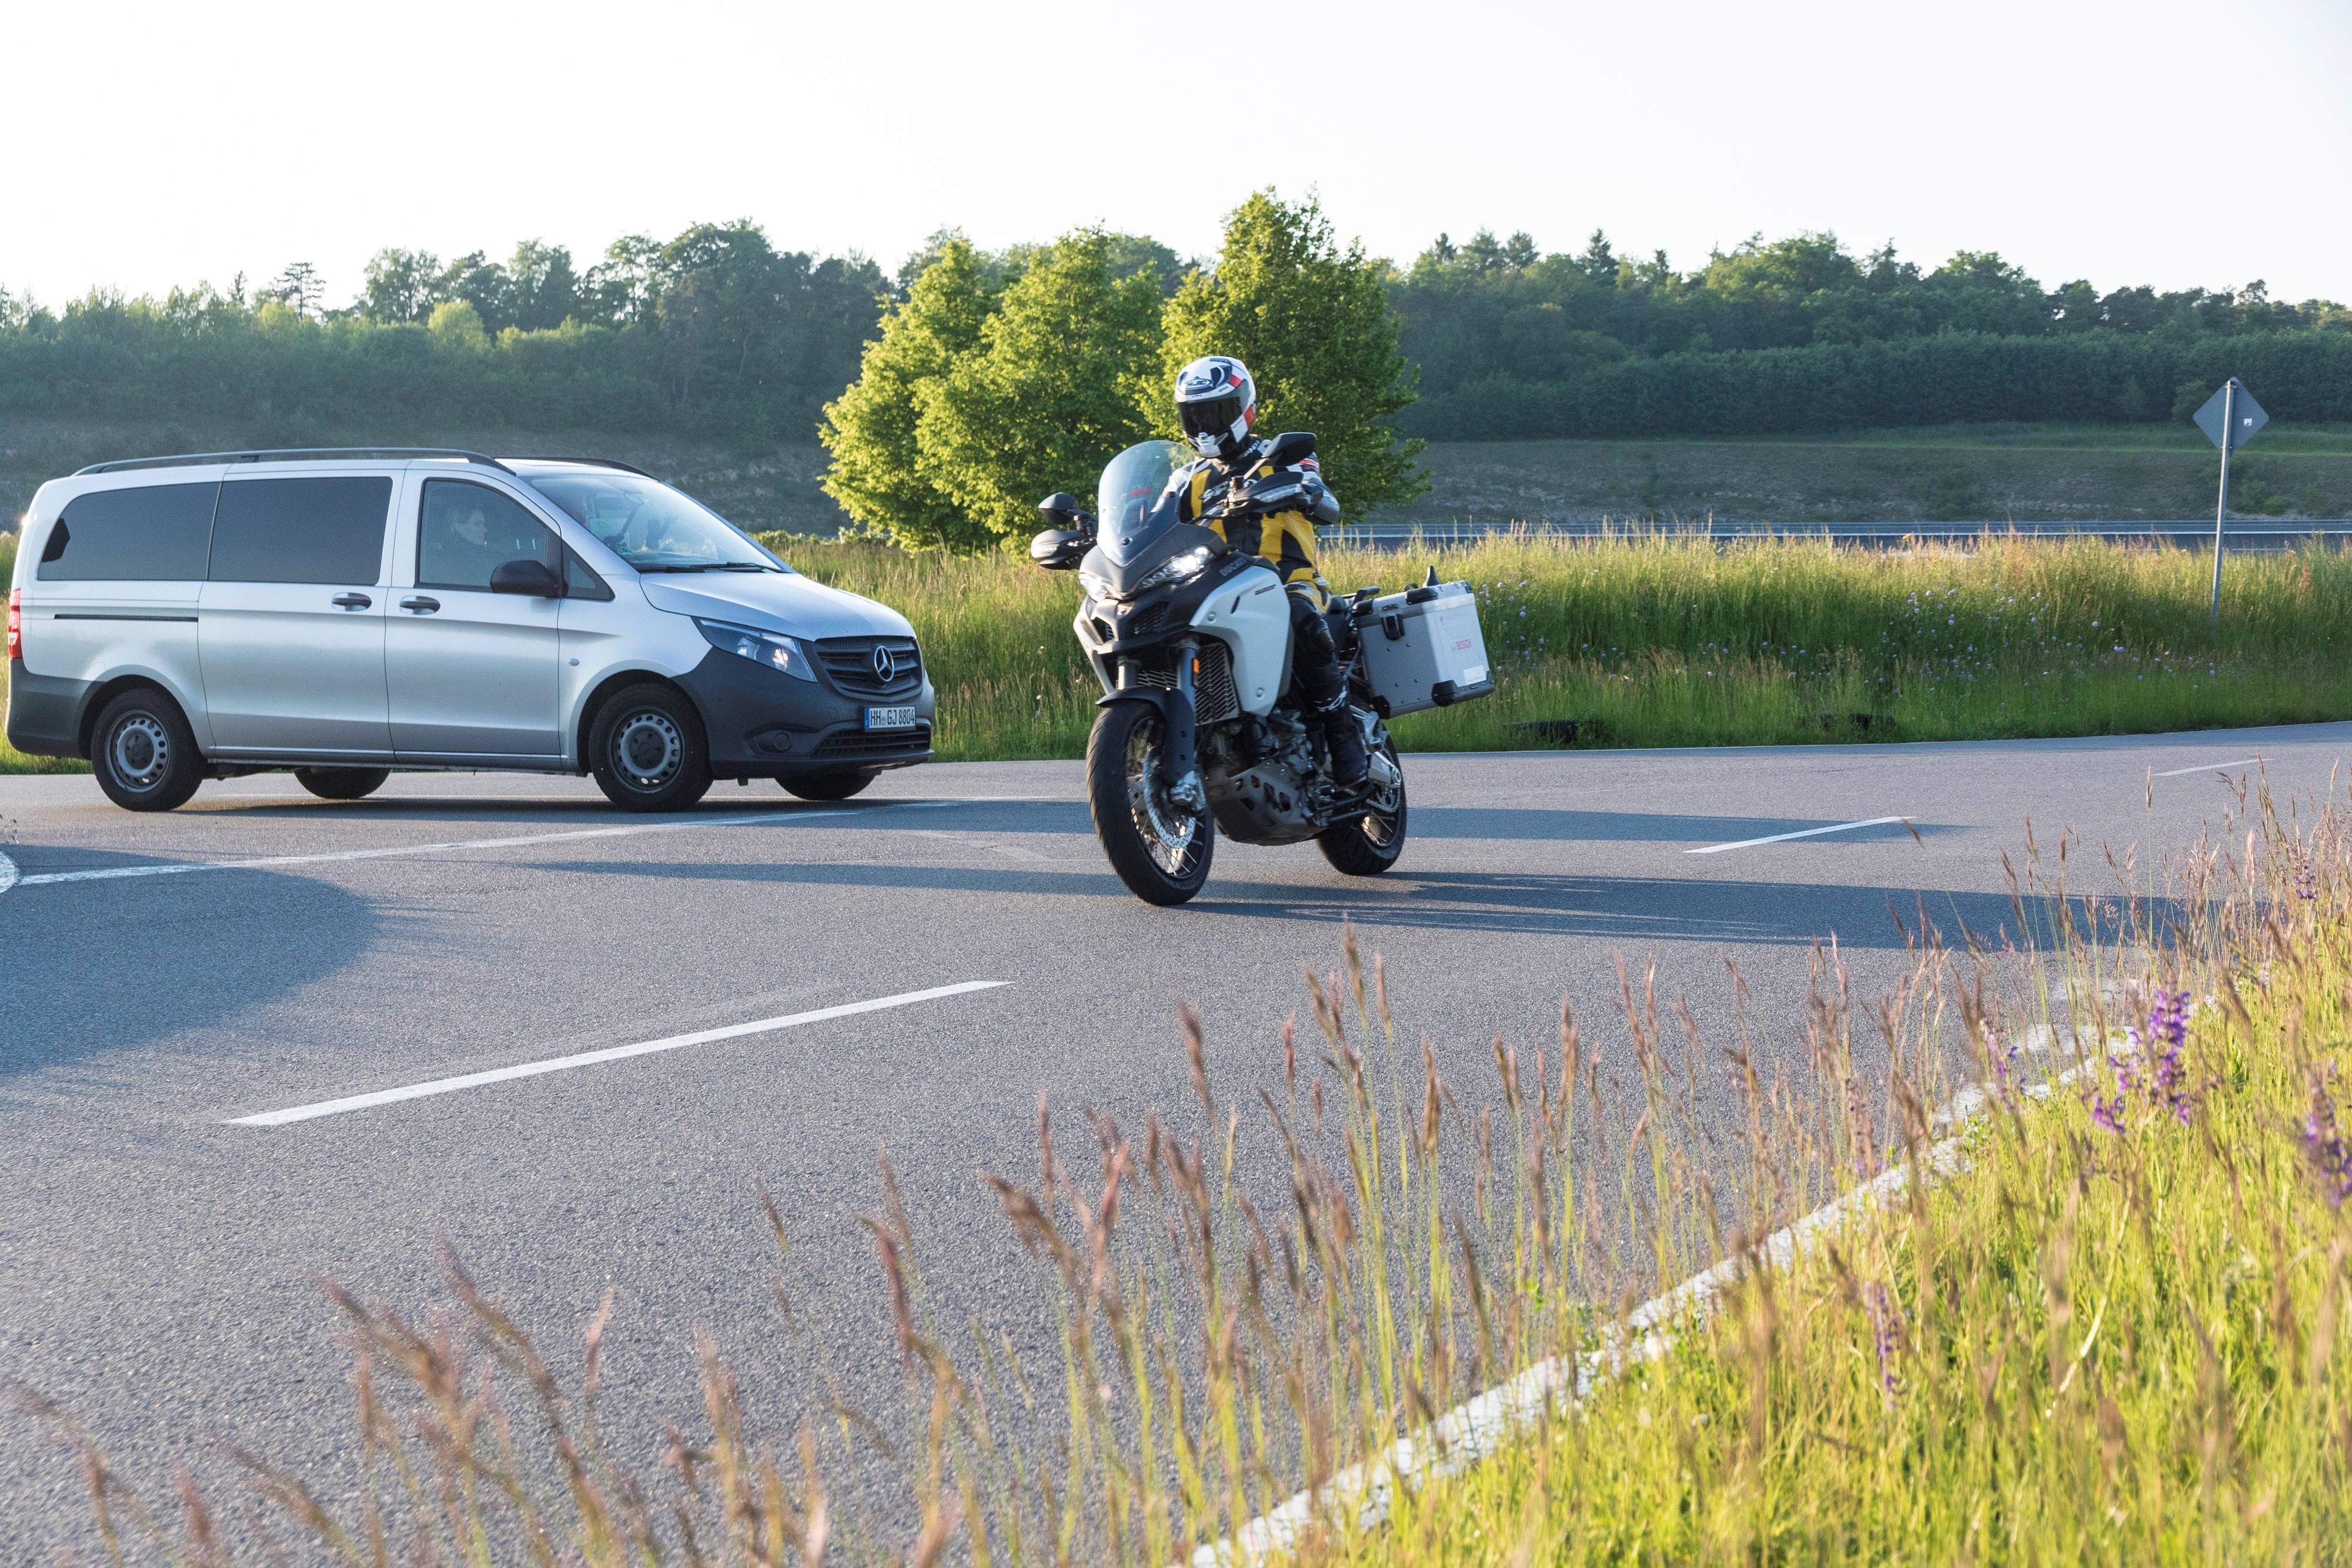 Motorcycle-to-car communication